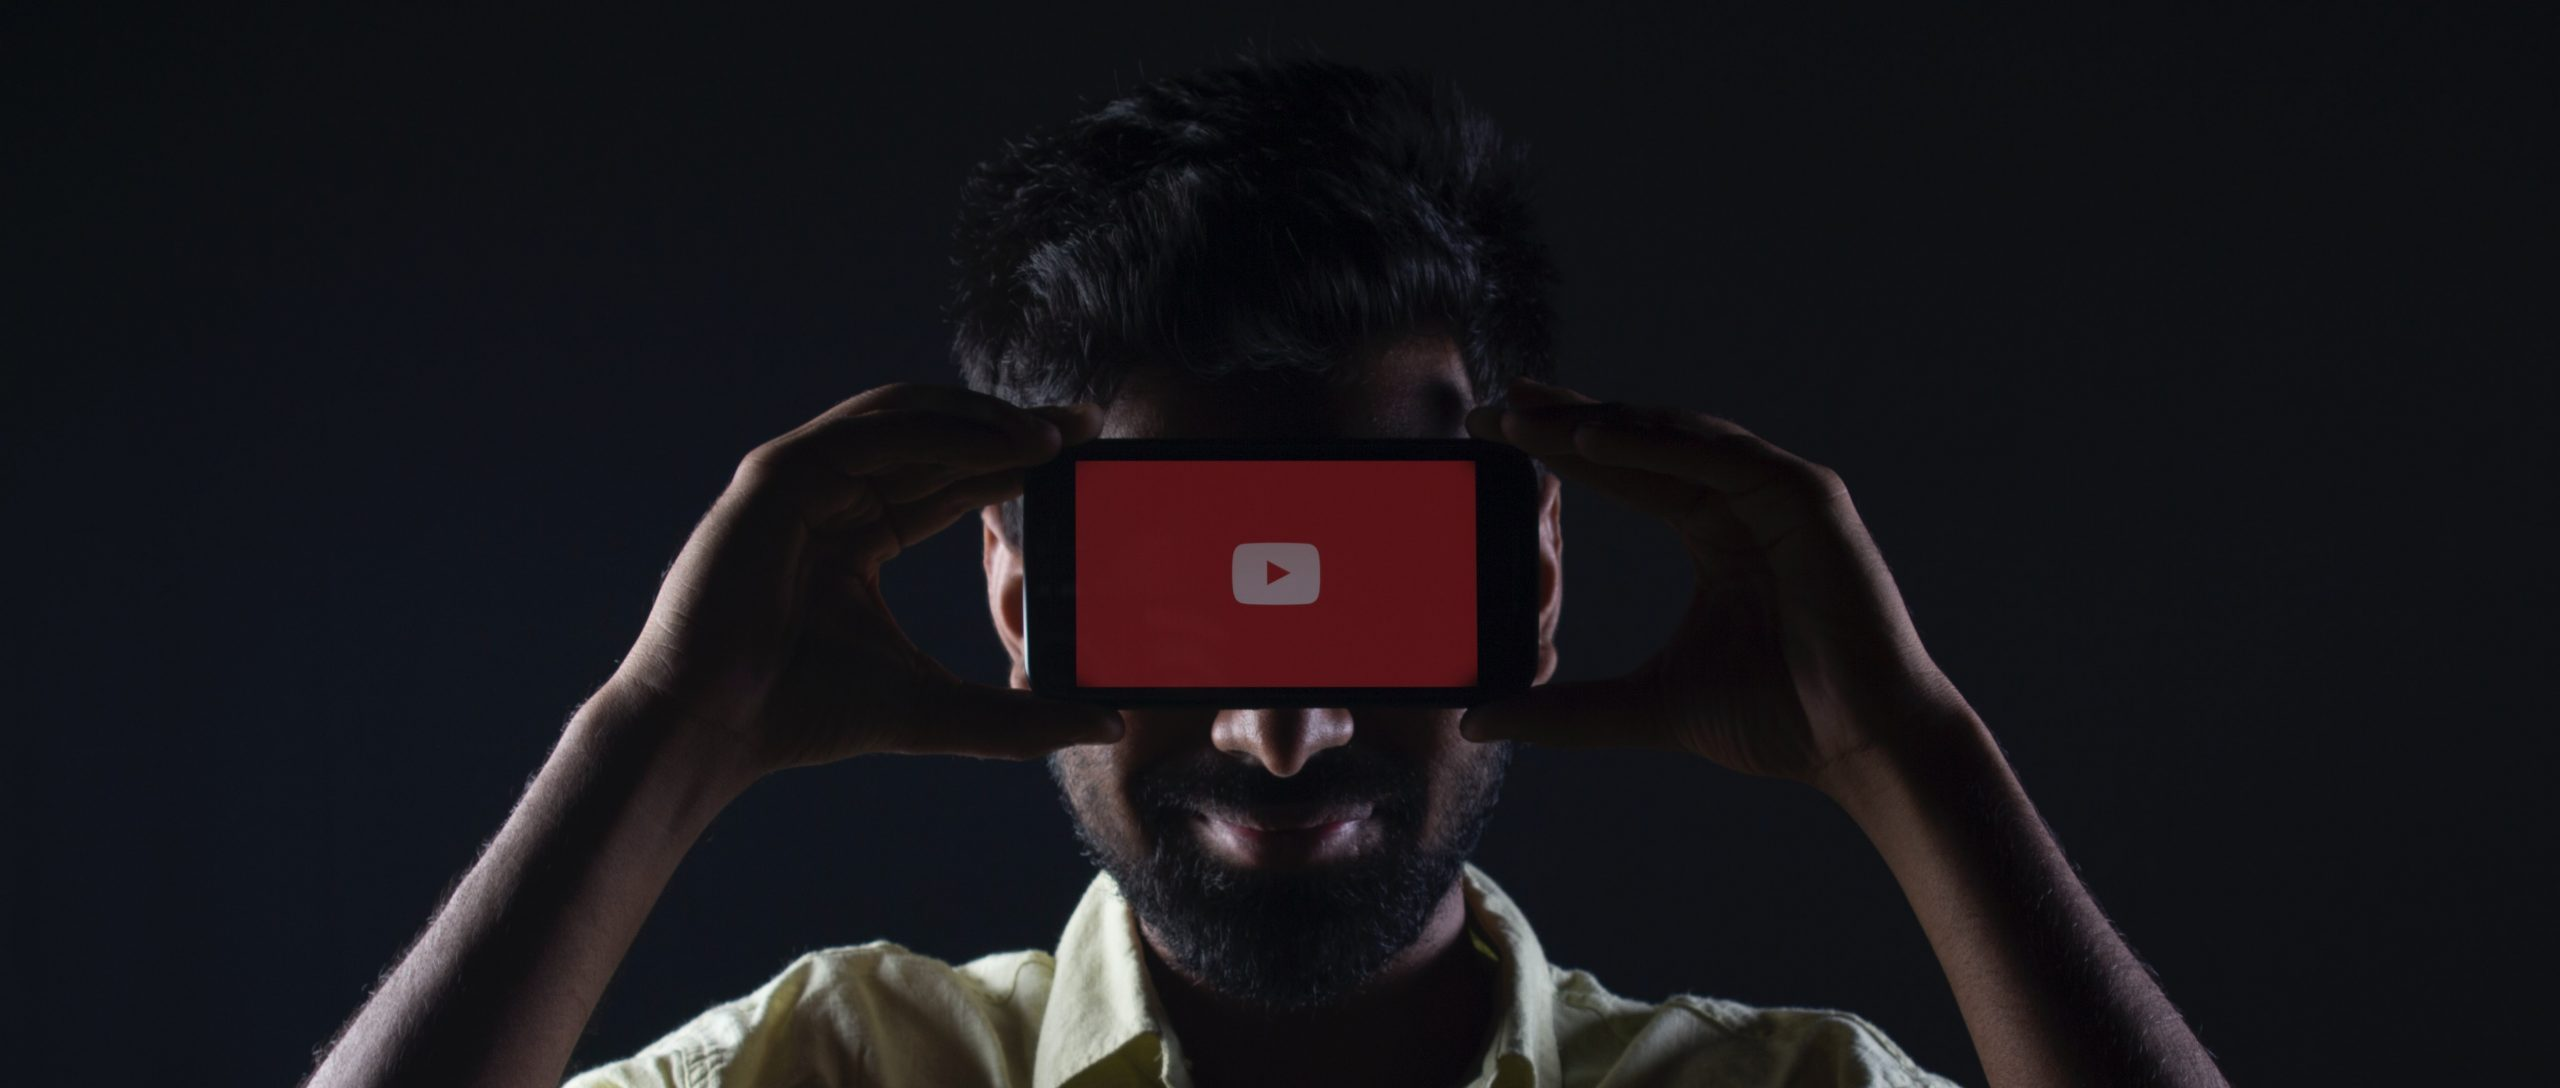 How To Download Videos From YouTube?